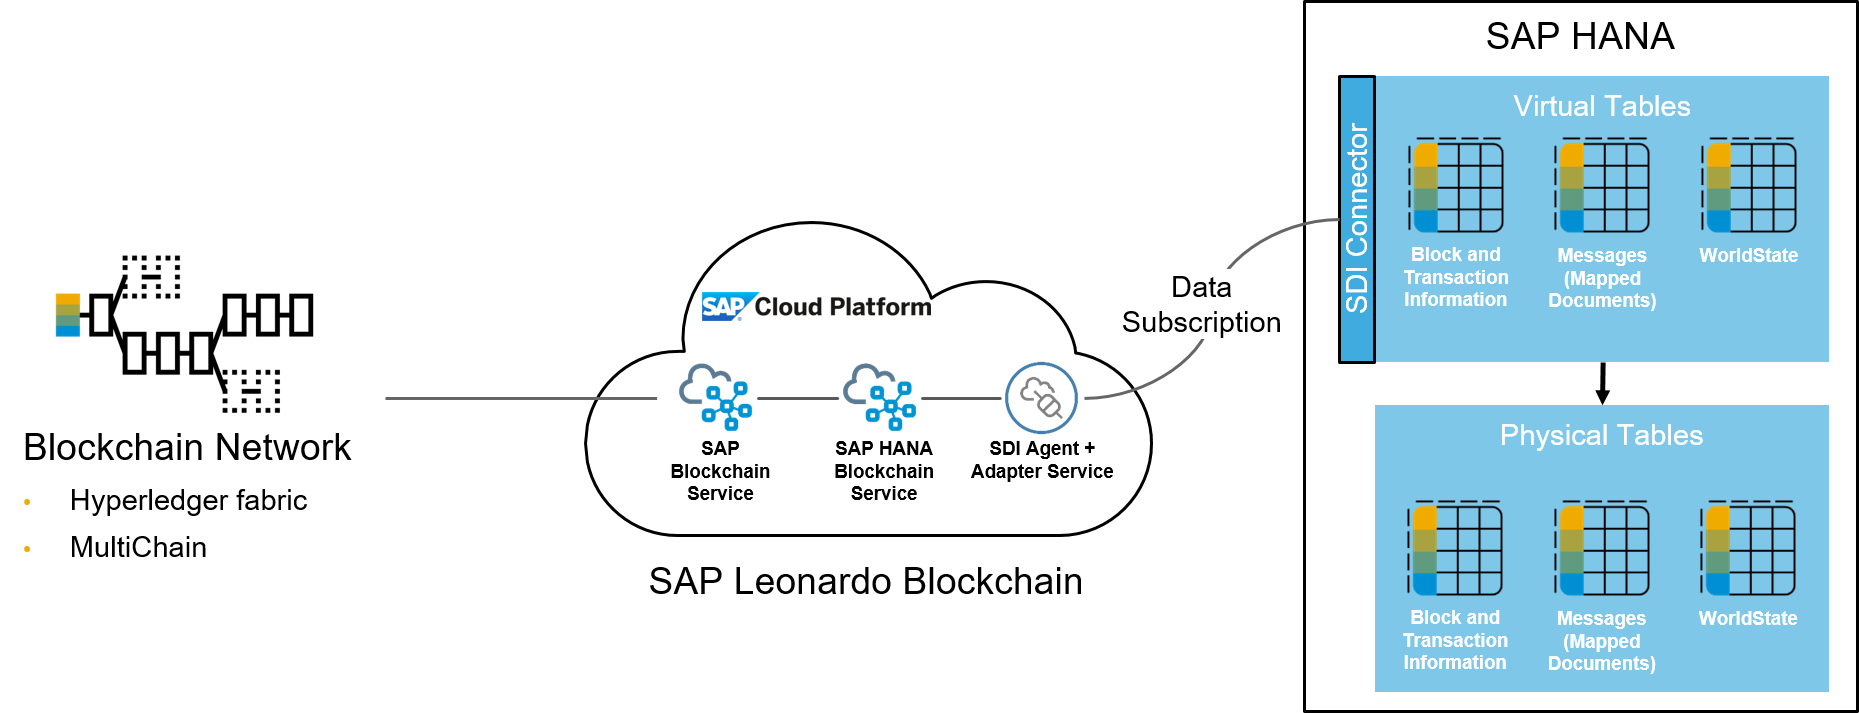 SCP Blockchain connects to any supported blockchain network via a cloud  service on SAP Cloud Platform. SAP HANA Blockchain establishes a link  between this ...